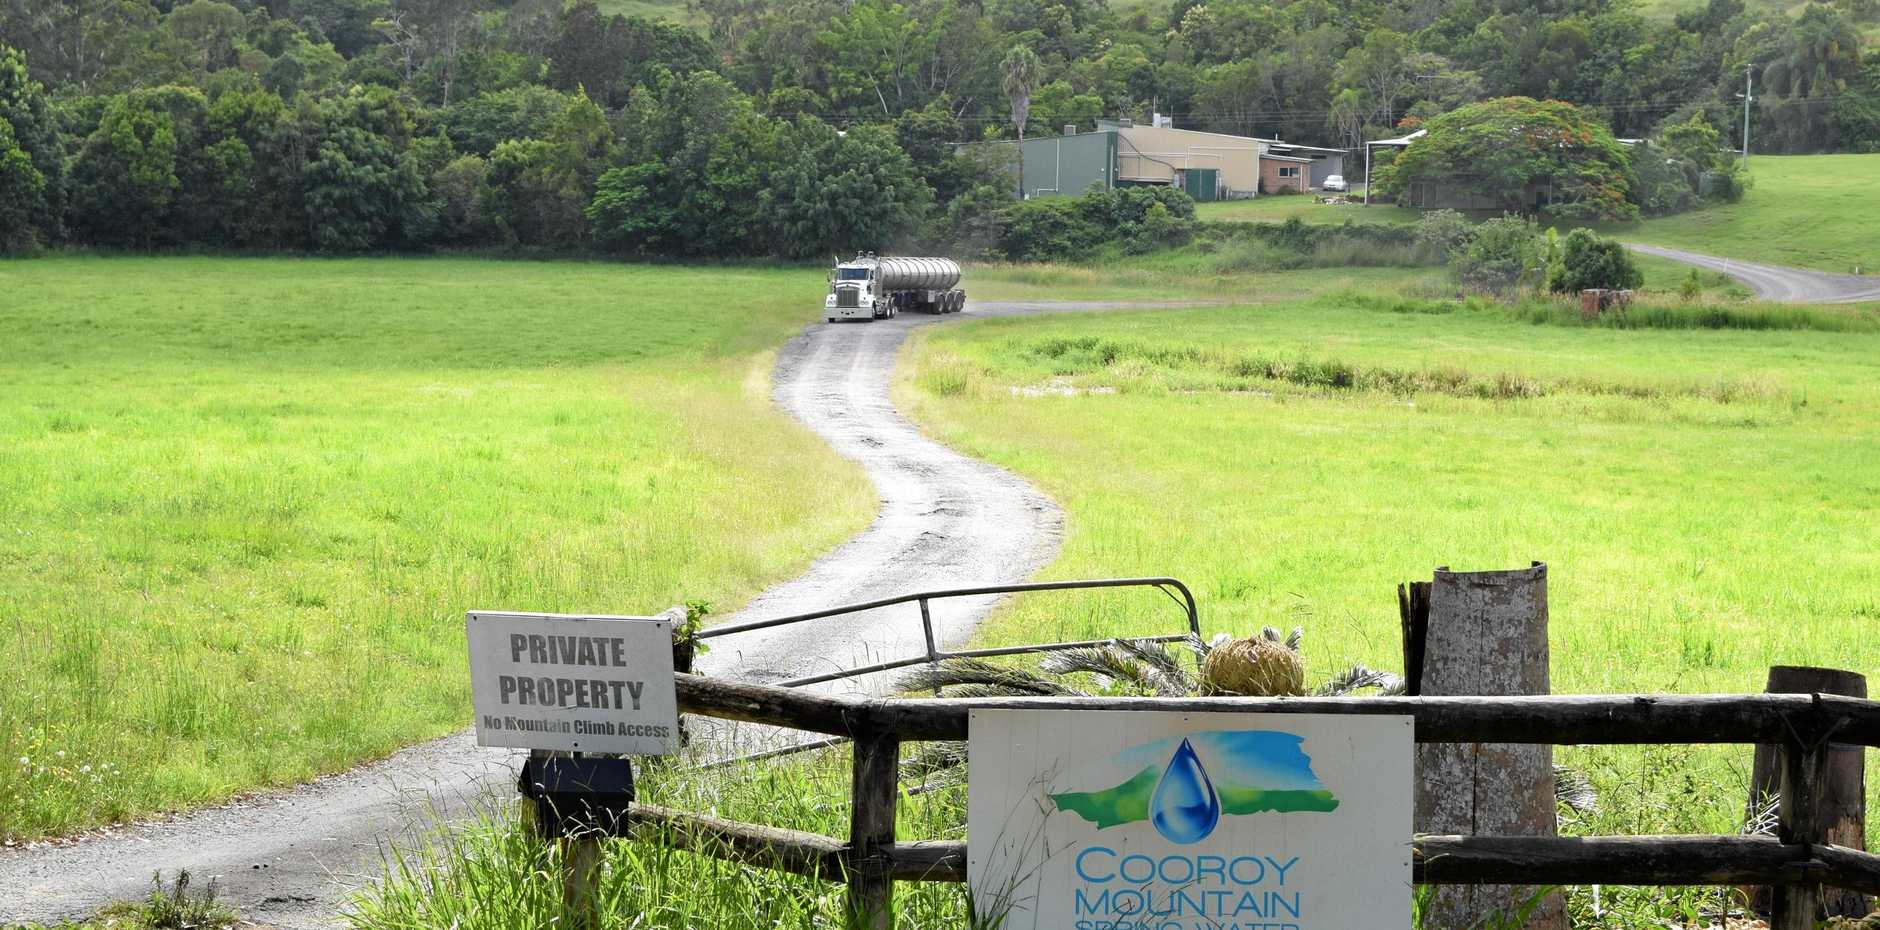 COOROY HAUL: A truck prepares to leave the Cooroy Mountain Spring Water bottling plant  on to Cooroy Mountain Rd on Friday.